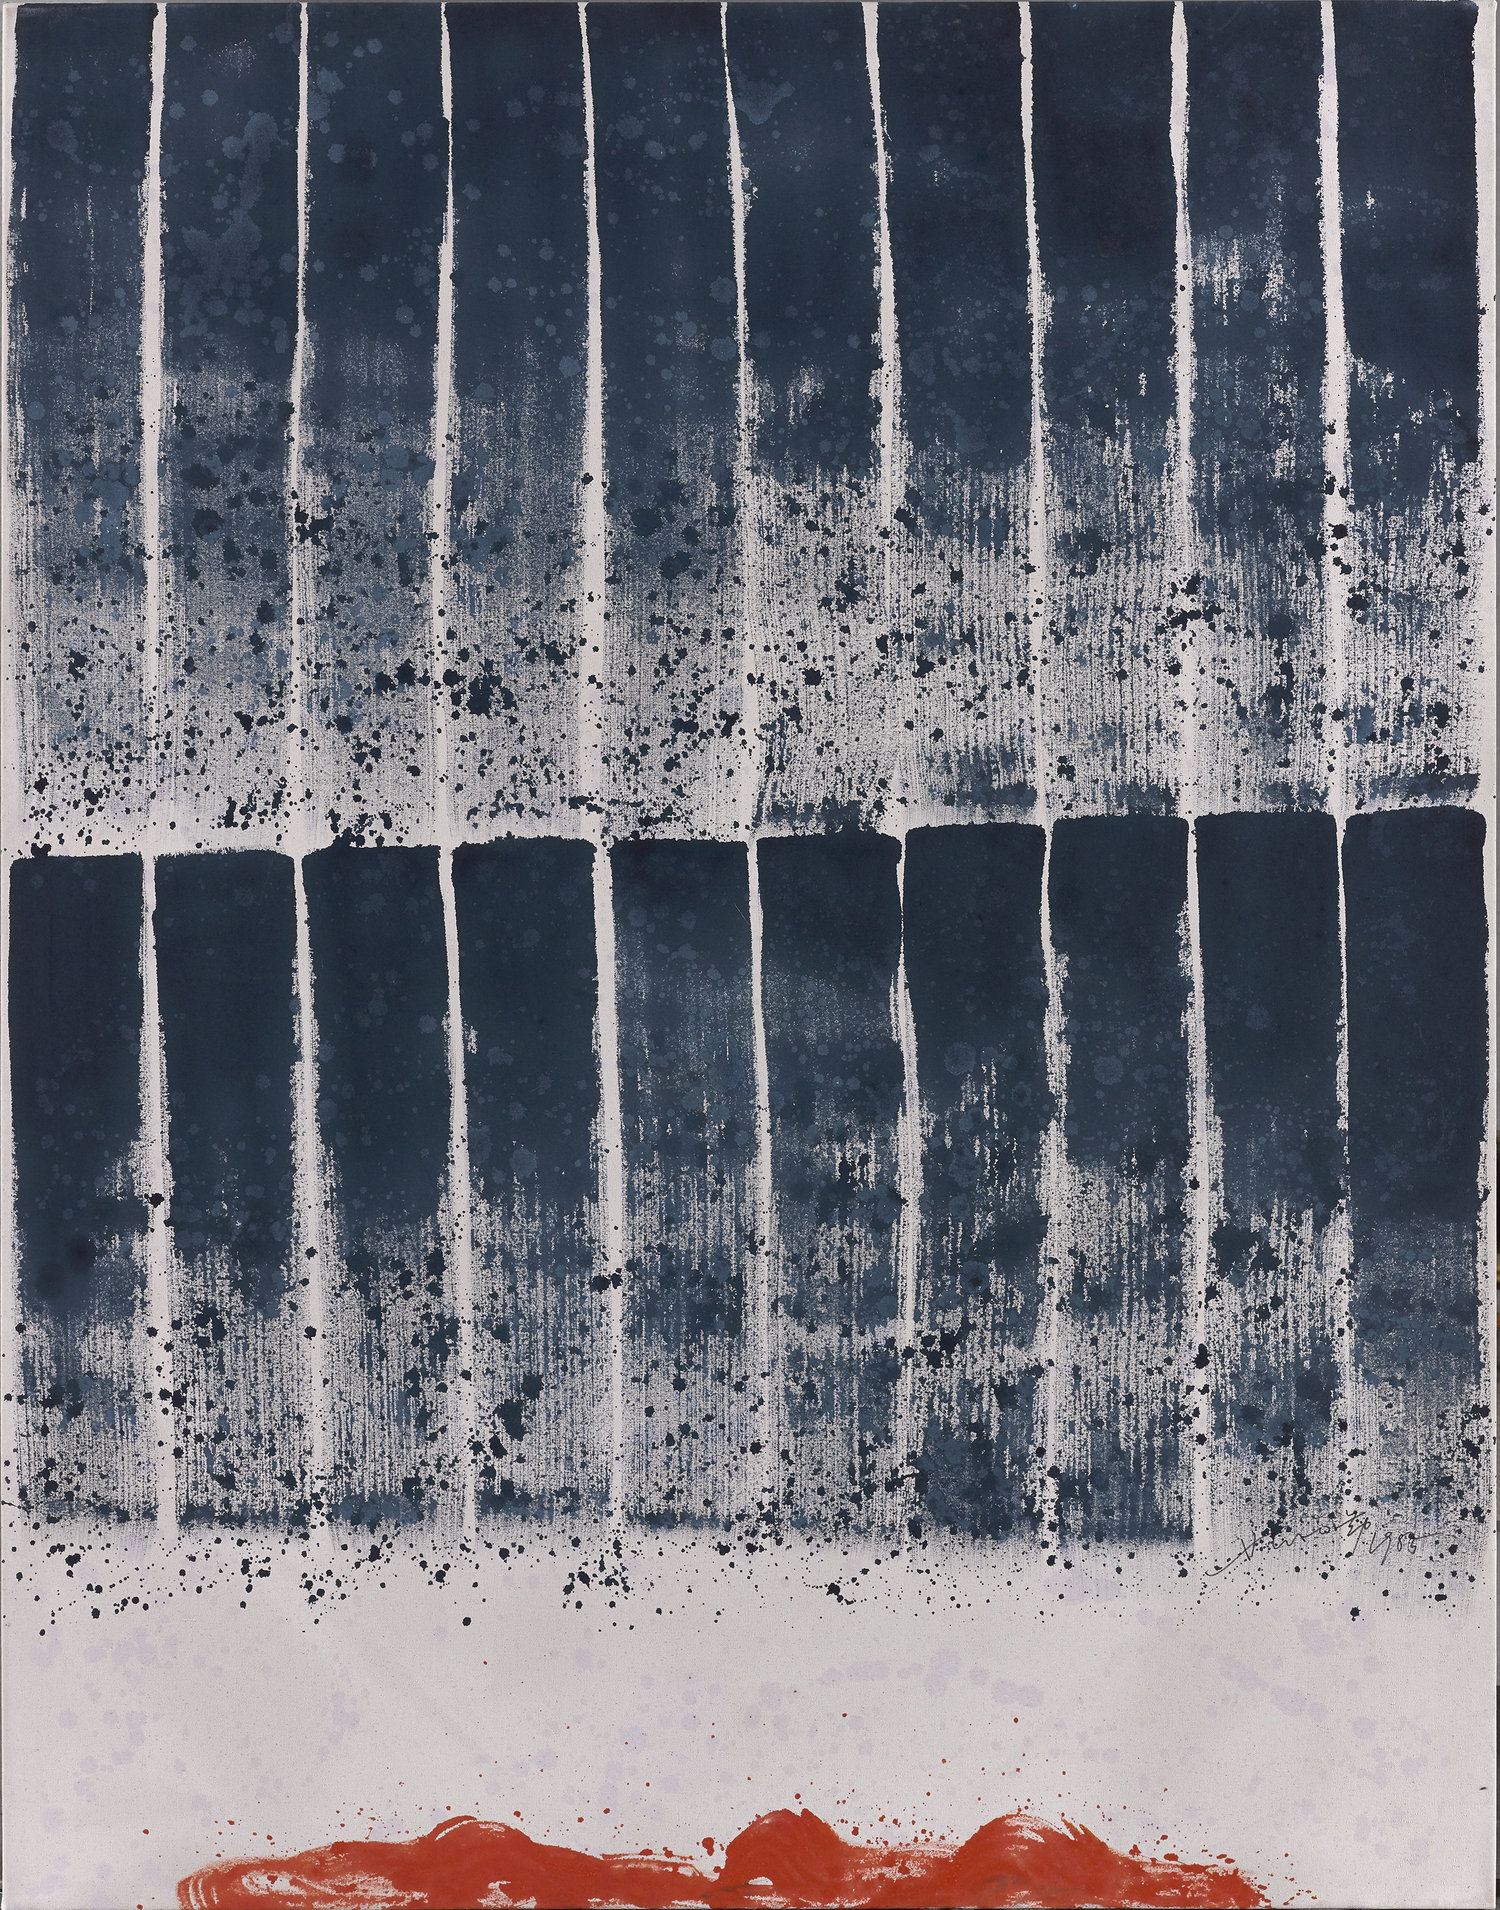 Hsiao Chin, Chi 296, acrylic on canvas, 140 x 110 cm, 1985